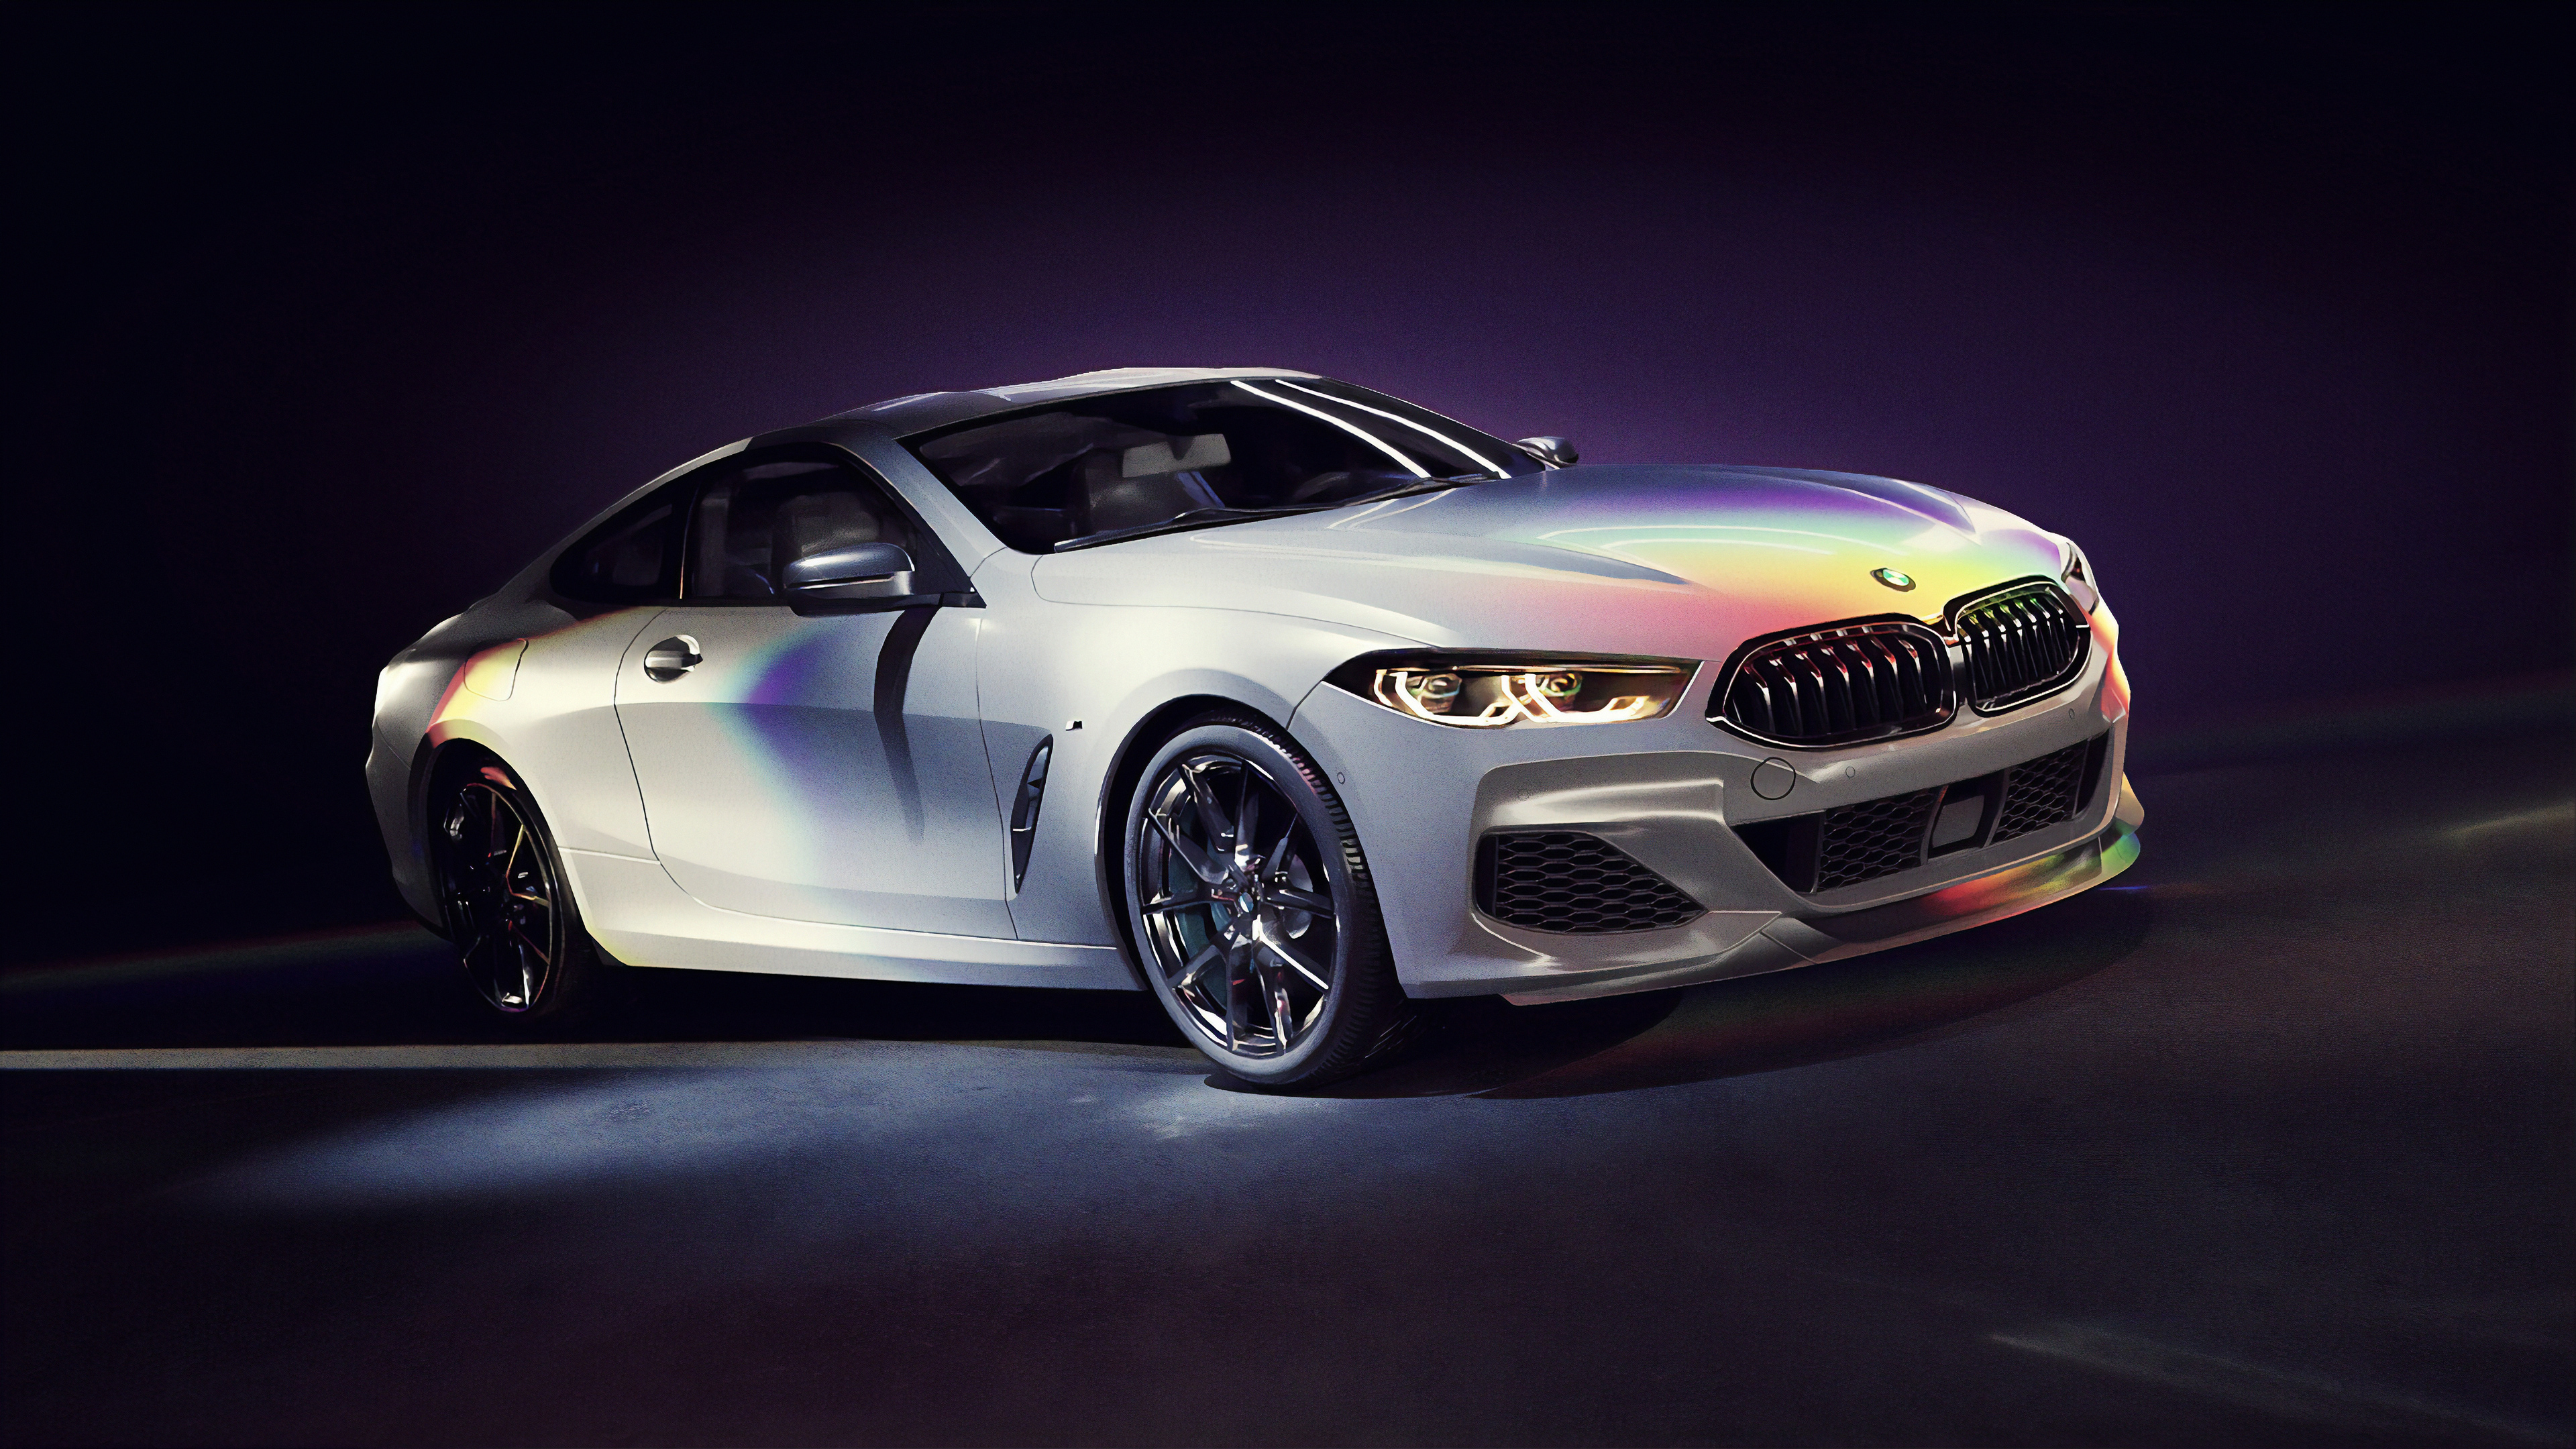 bmw m4 new 1570392119 - Bmw M4 New - hd-wallpapers, cars wallpapers, bmw m4 wallpapers, arstation wallpapers, 4k-wallpapers